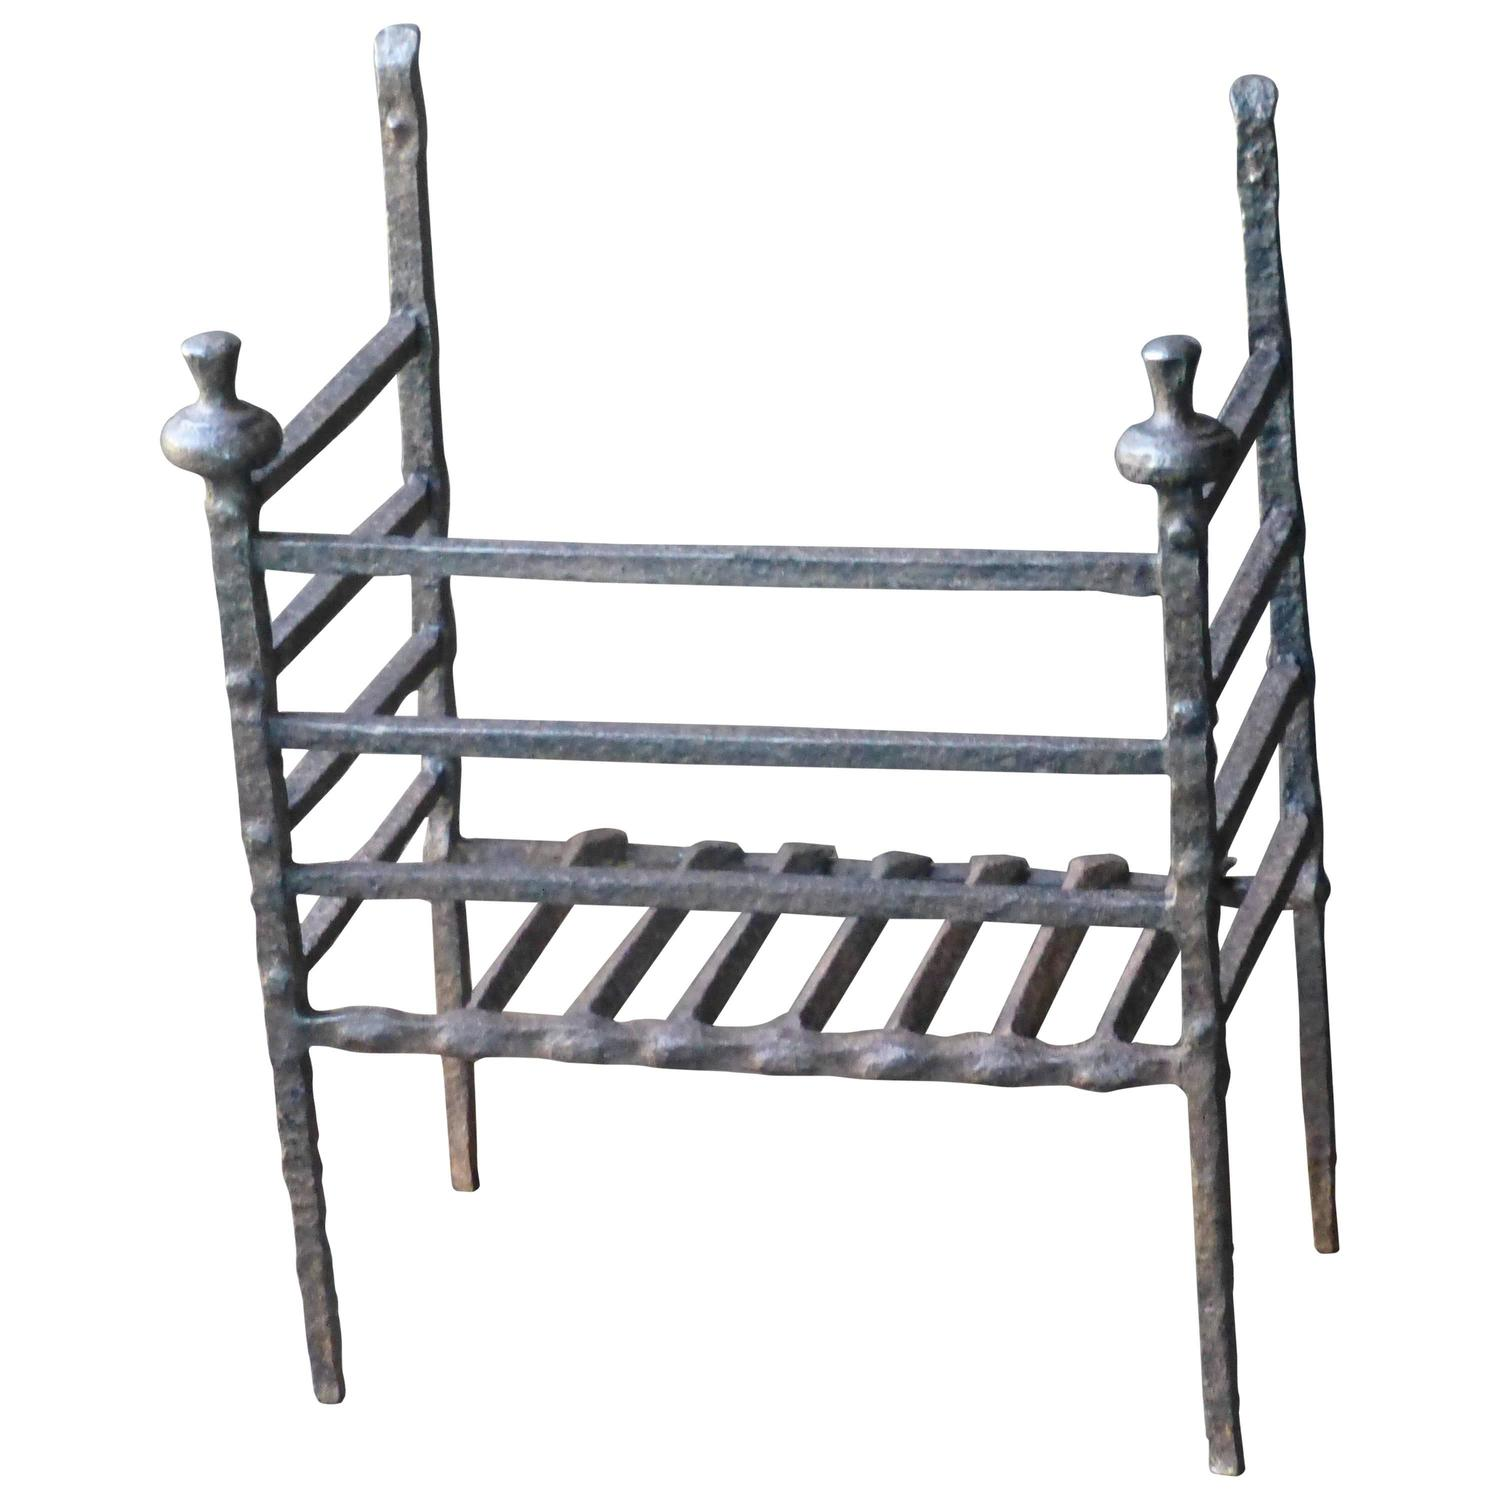 17th 18th Century French Fire Grate Fireplace Grate For Sale At 1stdibs